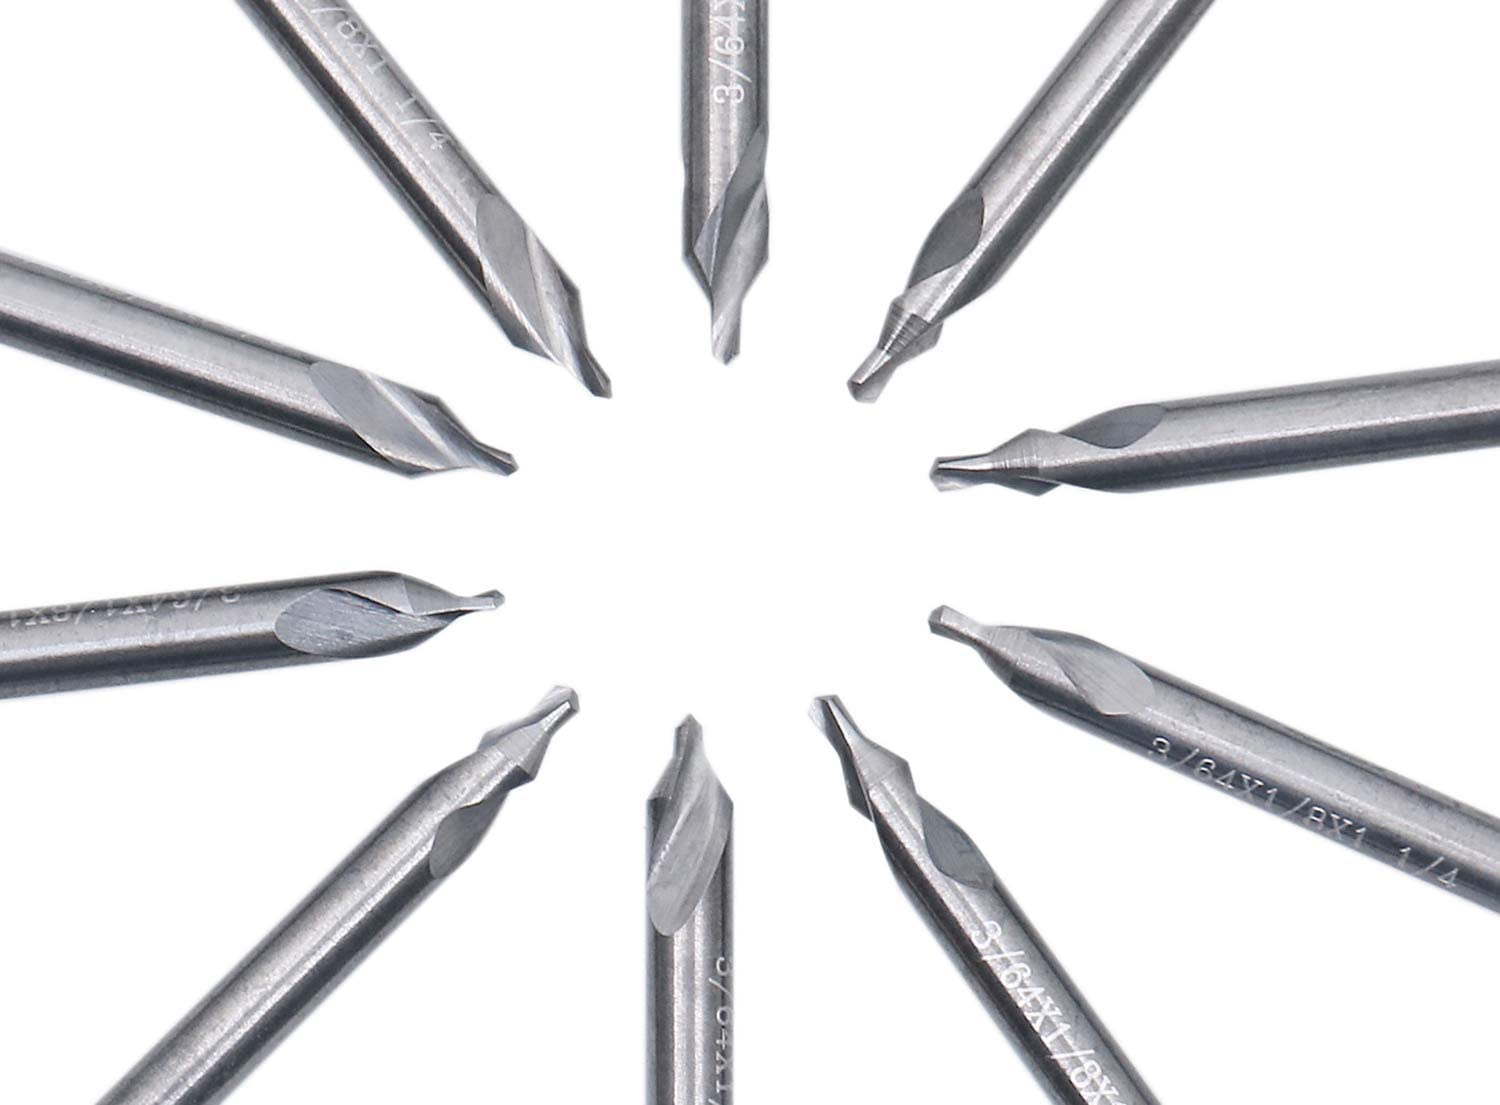 Accusize Industrial Tools 0.125 by 2-1//2 by 5//16 Solid Carbide Center Drill Bits Number 4 585-1250 60 Deg